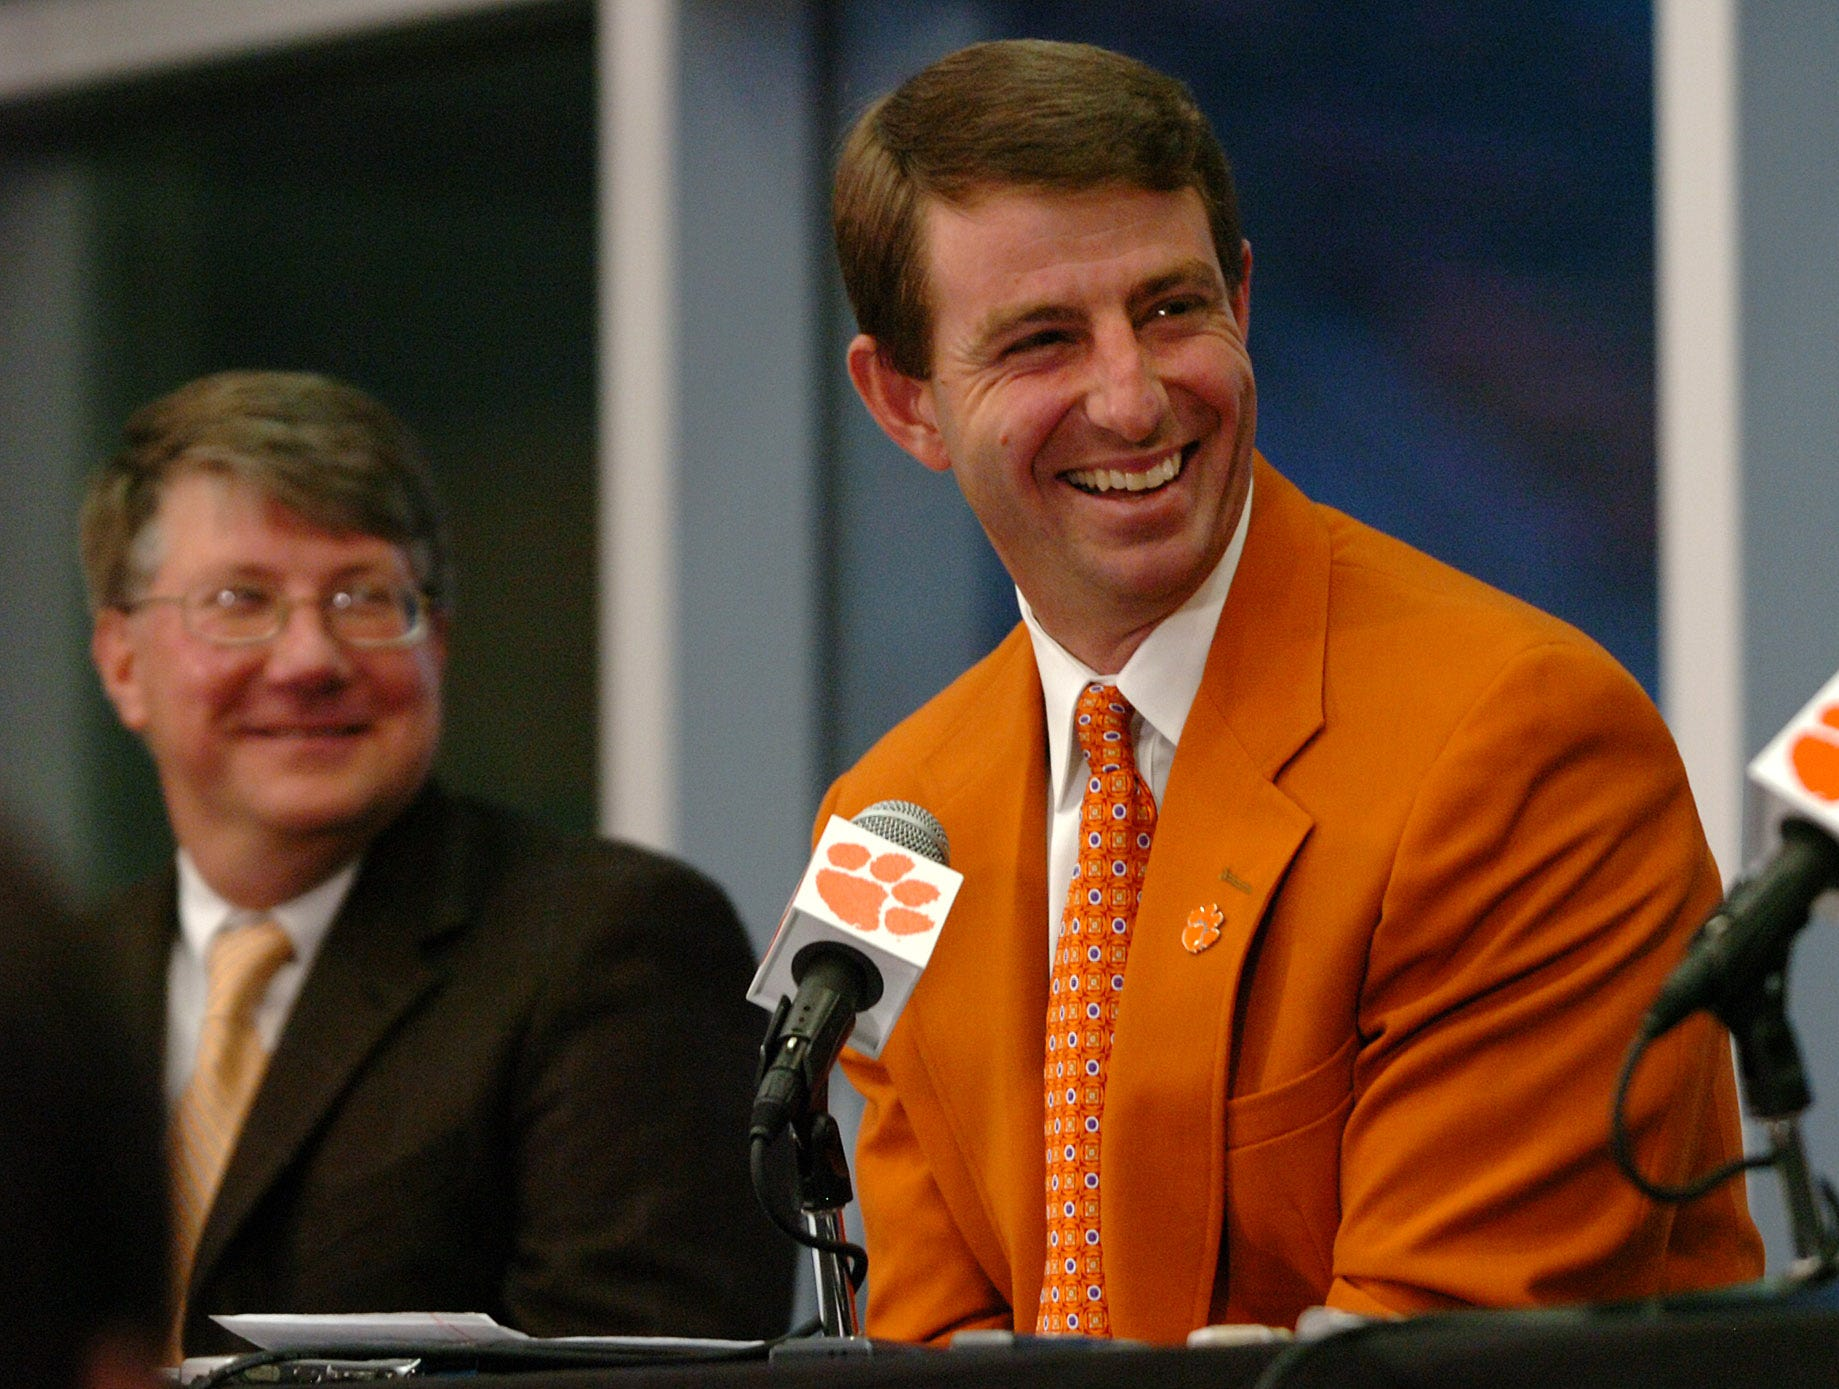 Dabo Swinney is announced as Clemson's head football coach during a press conference at Memorial Stadium in Clemson Monday, December 1,  2008.